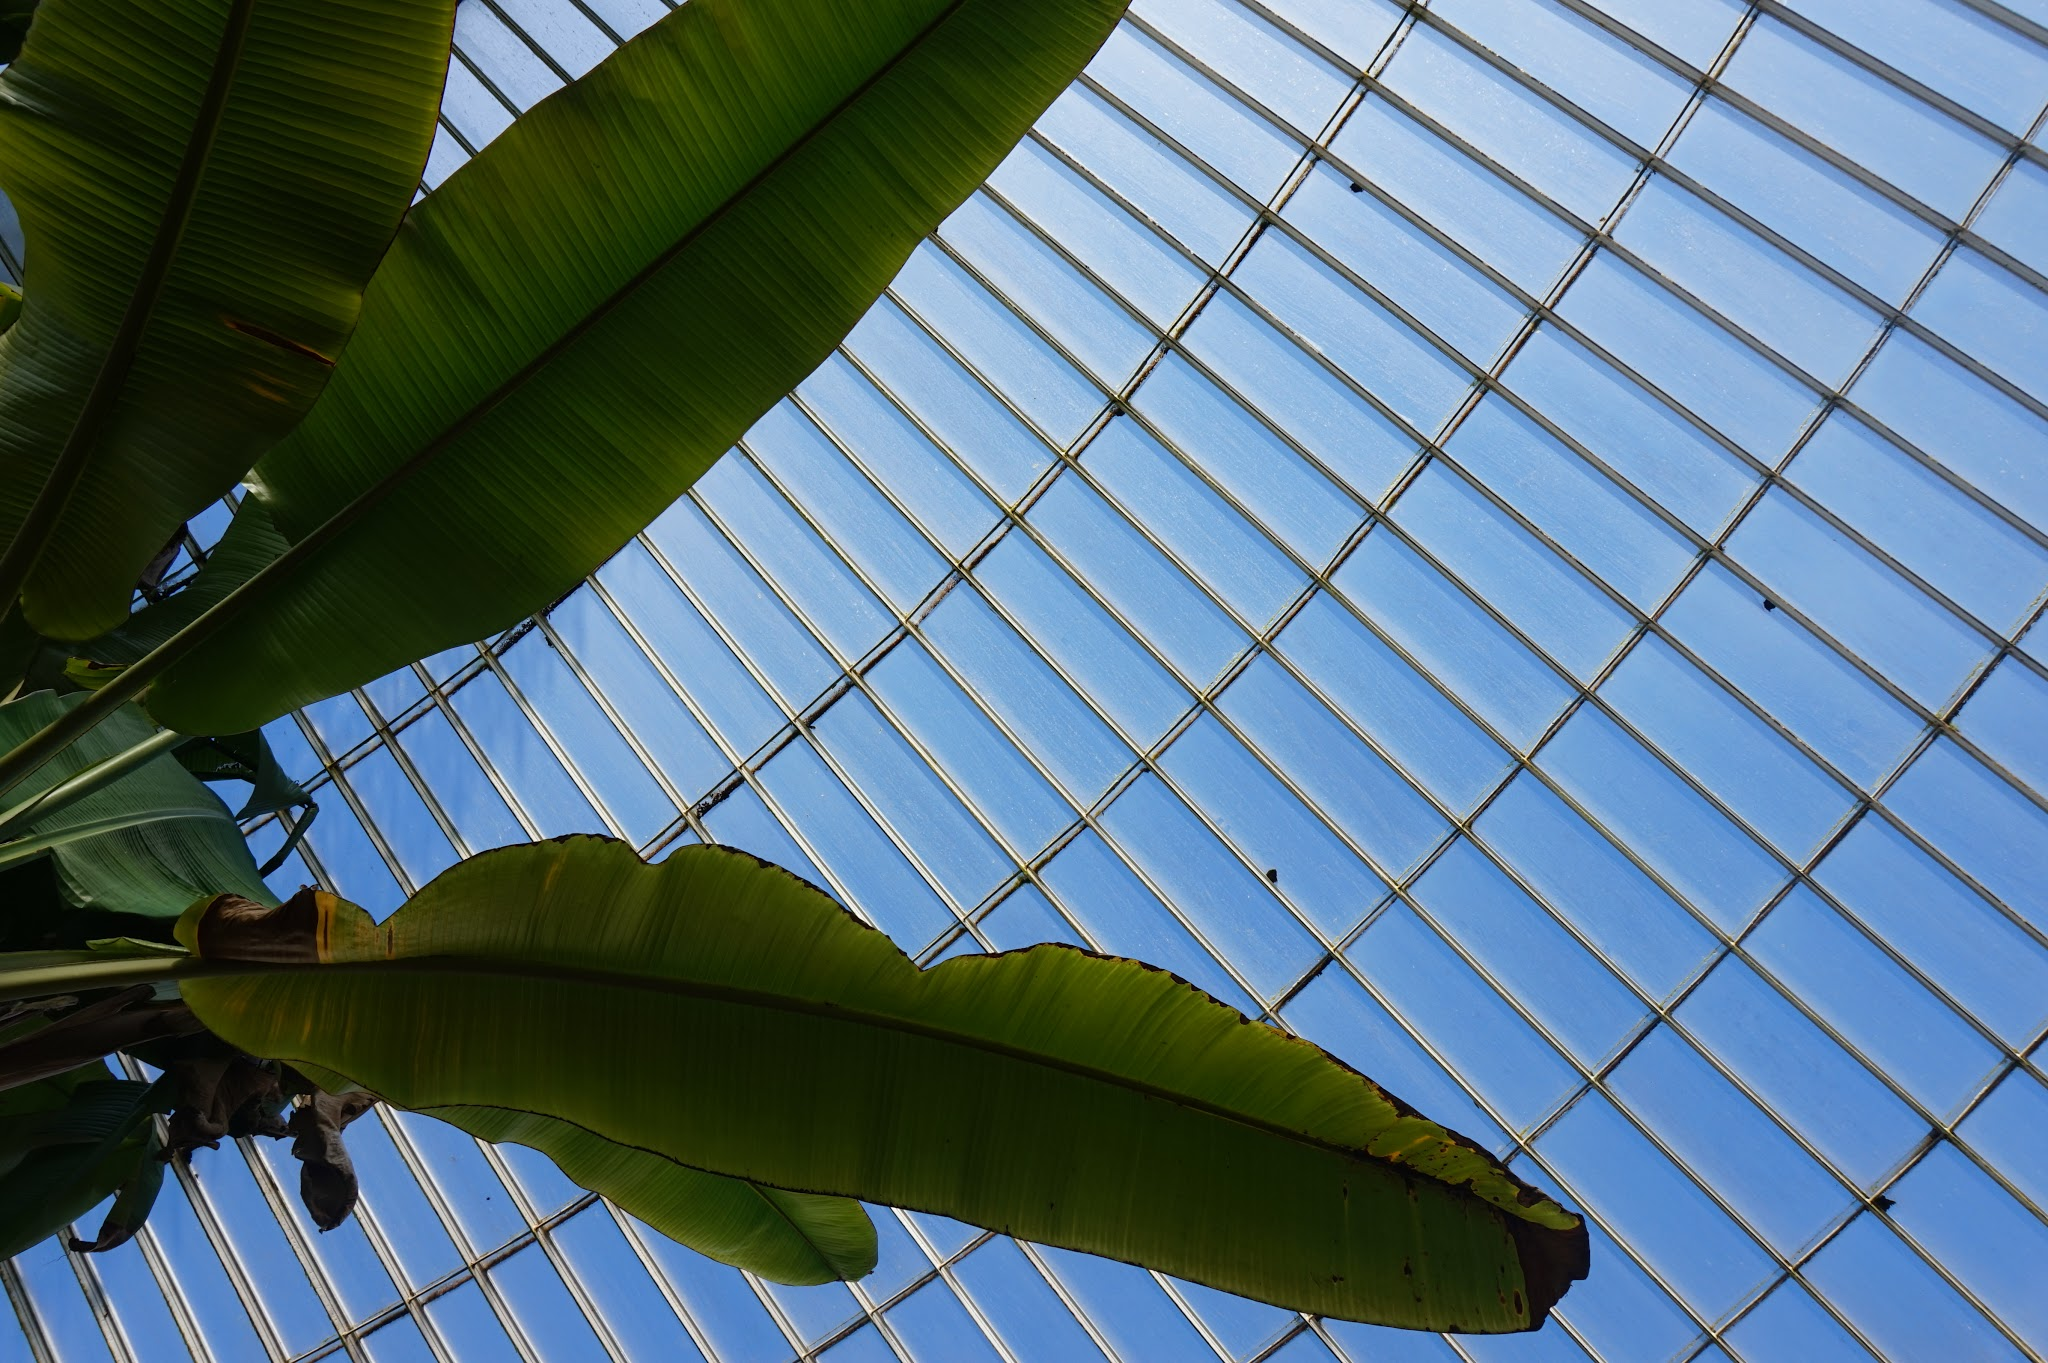 huge leaf against blue sky through greenhouse roof